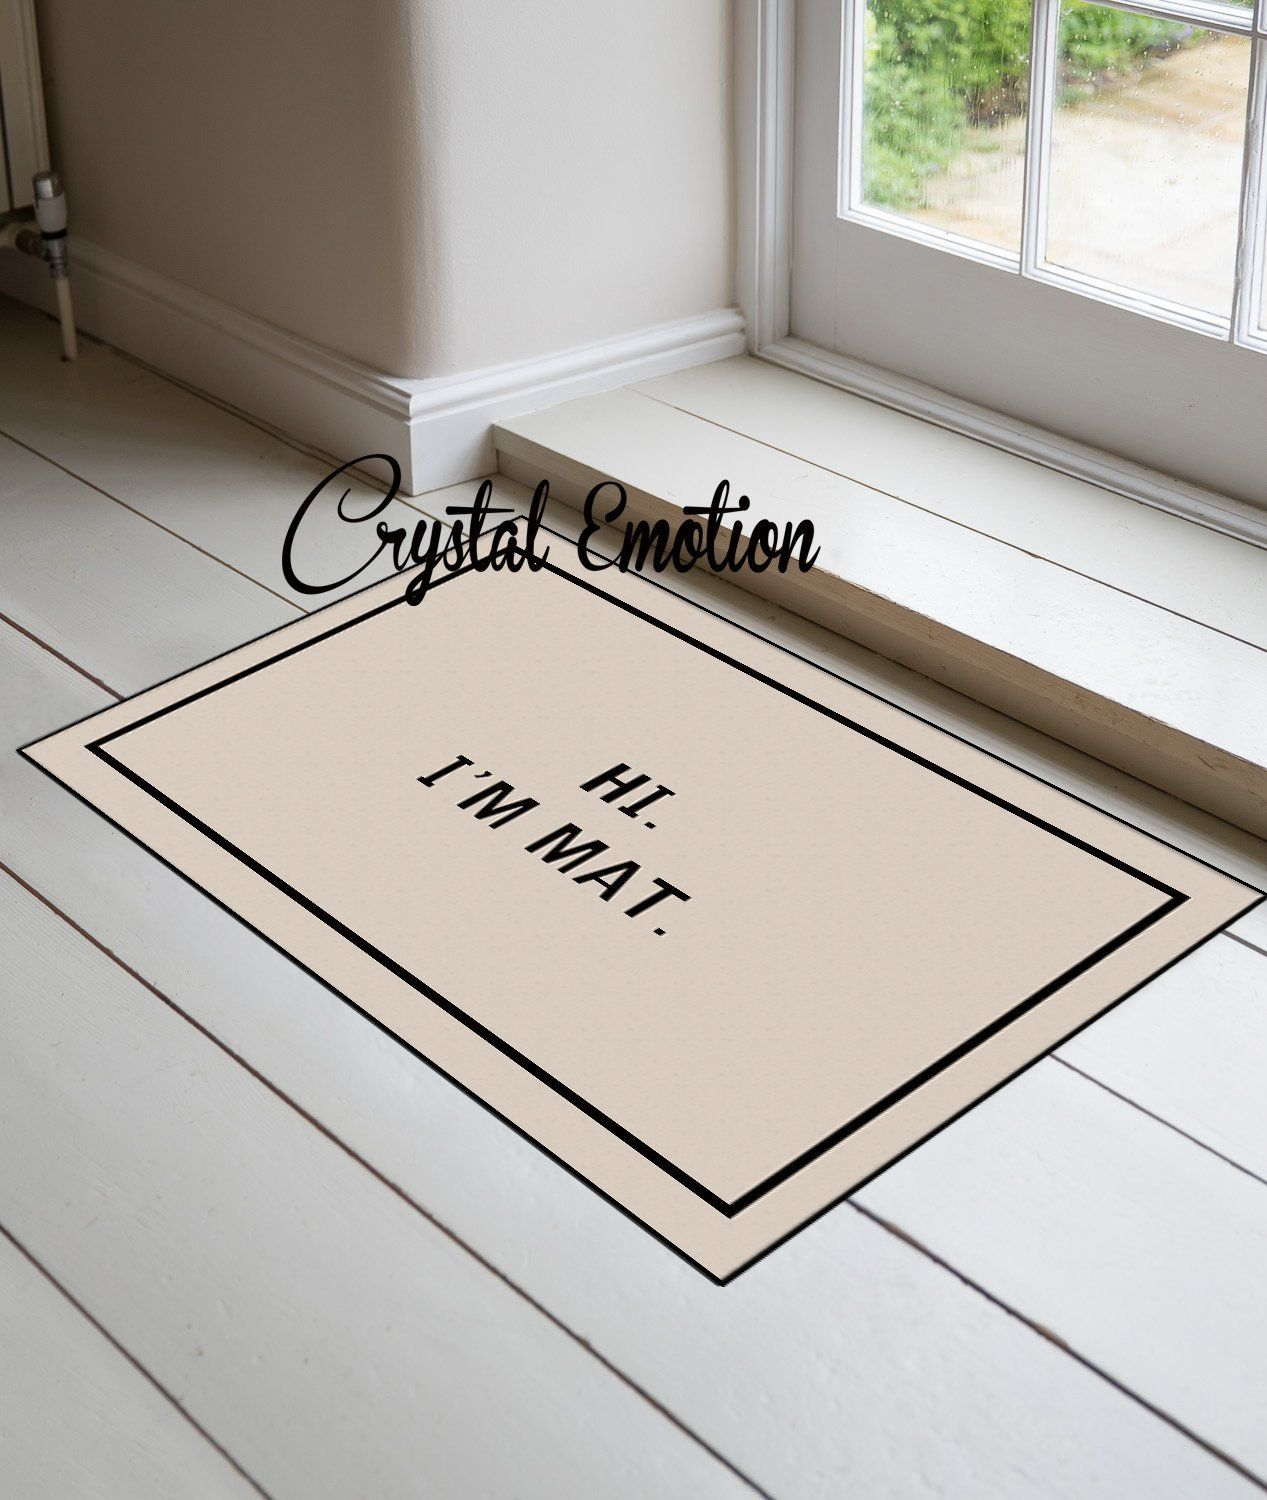 Exceptionnel Crystal Emotion Decorative Door Mat Hi I Am Mat Outdoor And Indoor Doormat  Non Woven